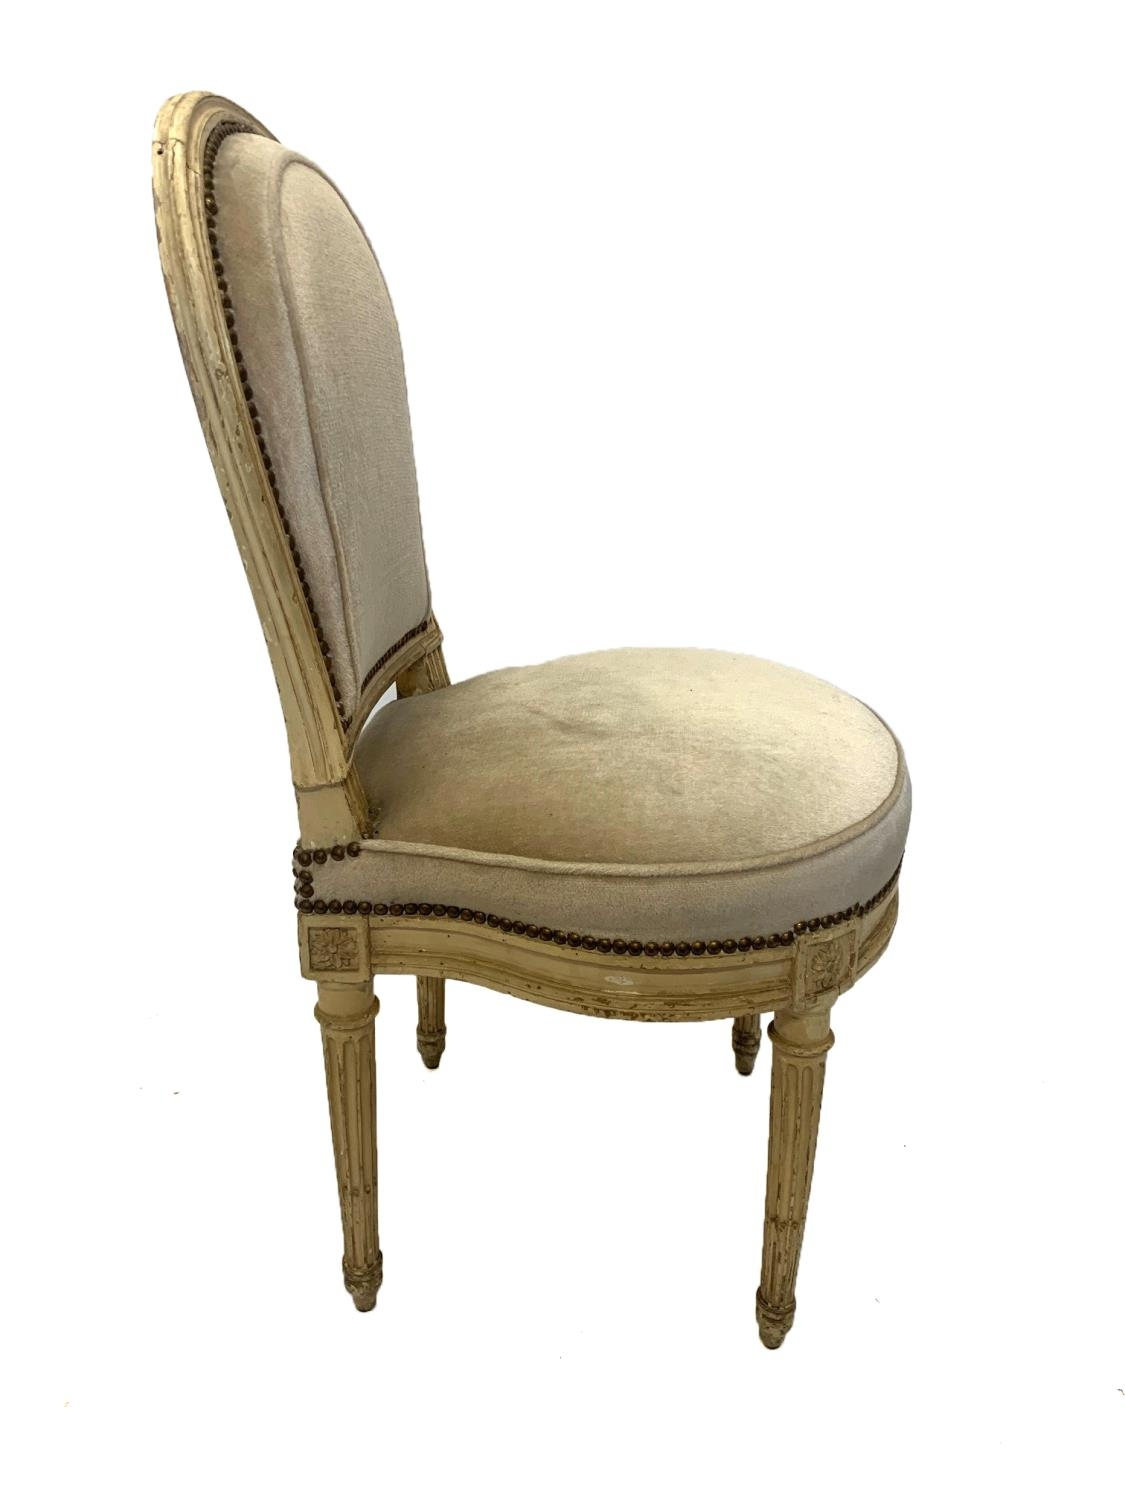 GEORGES JACOB, CIRCA 1775, A RARE SET OF SIX 18TH CENTURY LOUIS XVI PAINTED CARVED WOOD SIDE - Image 5 of 13